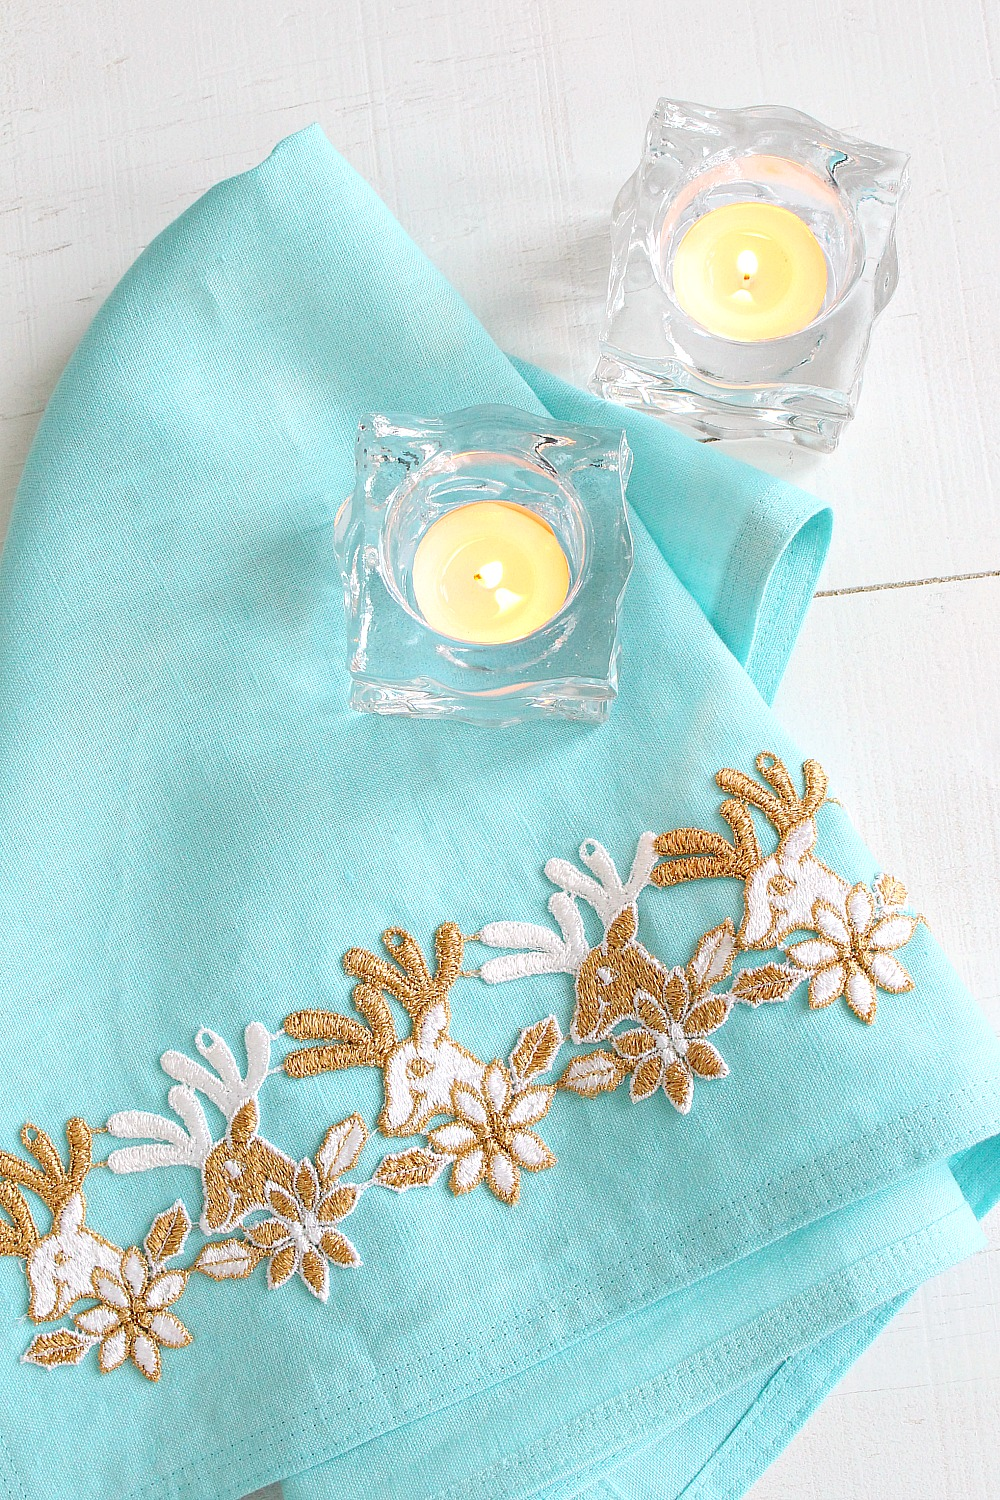 DIY Holiday Tea Towel with Reindeer Embroidery Trim